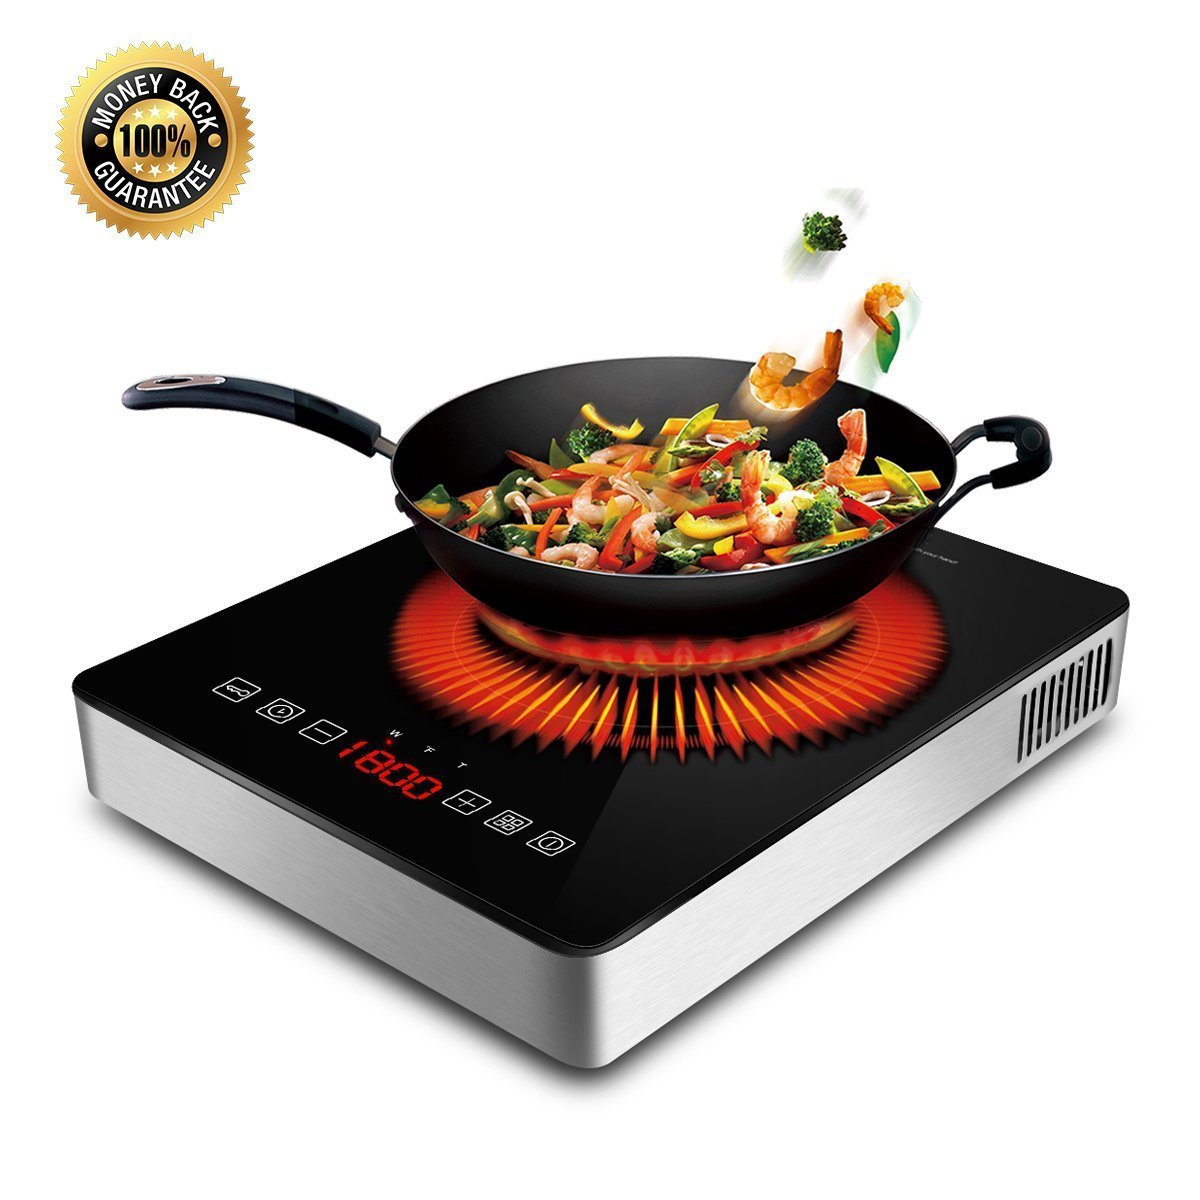 Electric Frying Pan Consumer Reports